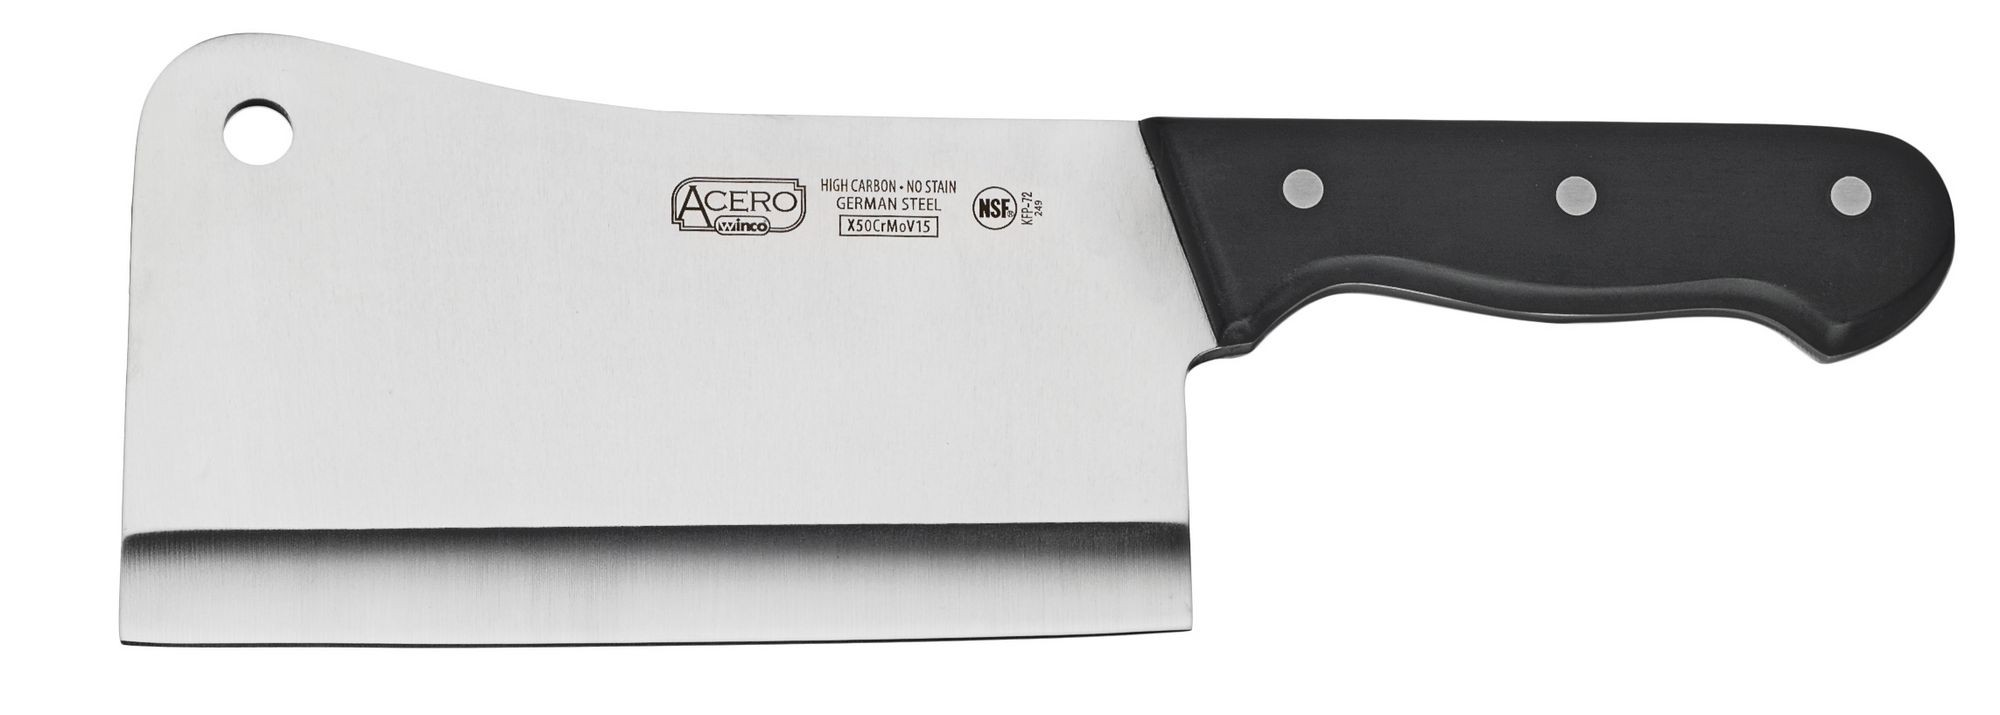 "Winco KFP-72 Heavy-Duty 7"" Cleaver with POM Handle"